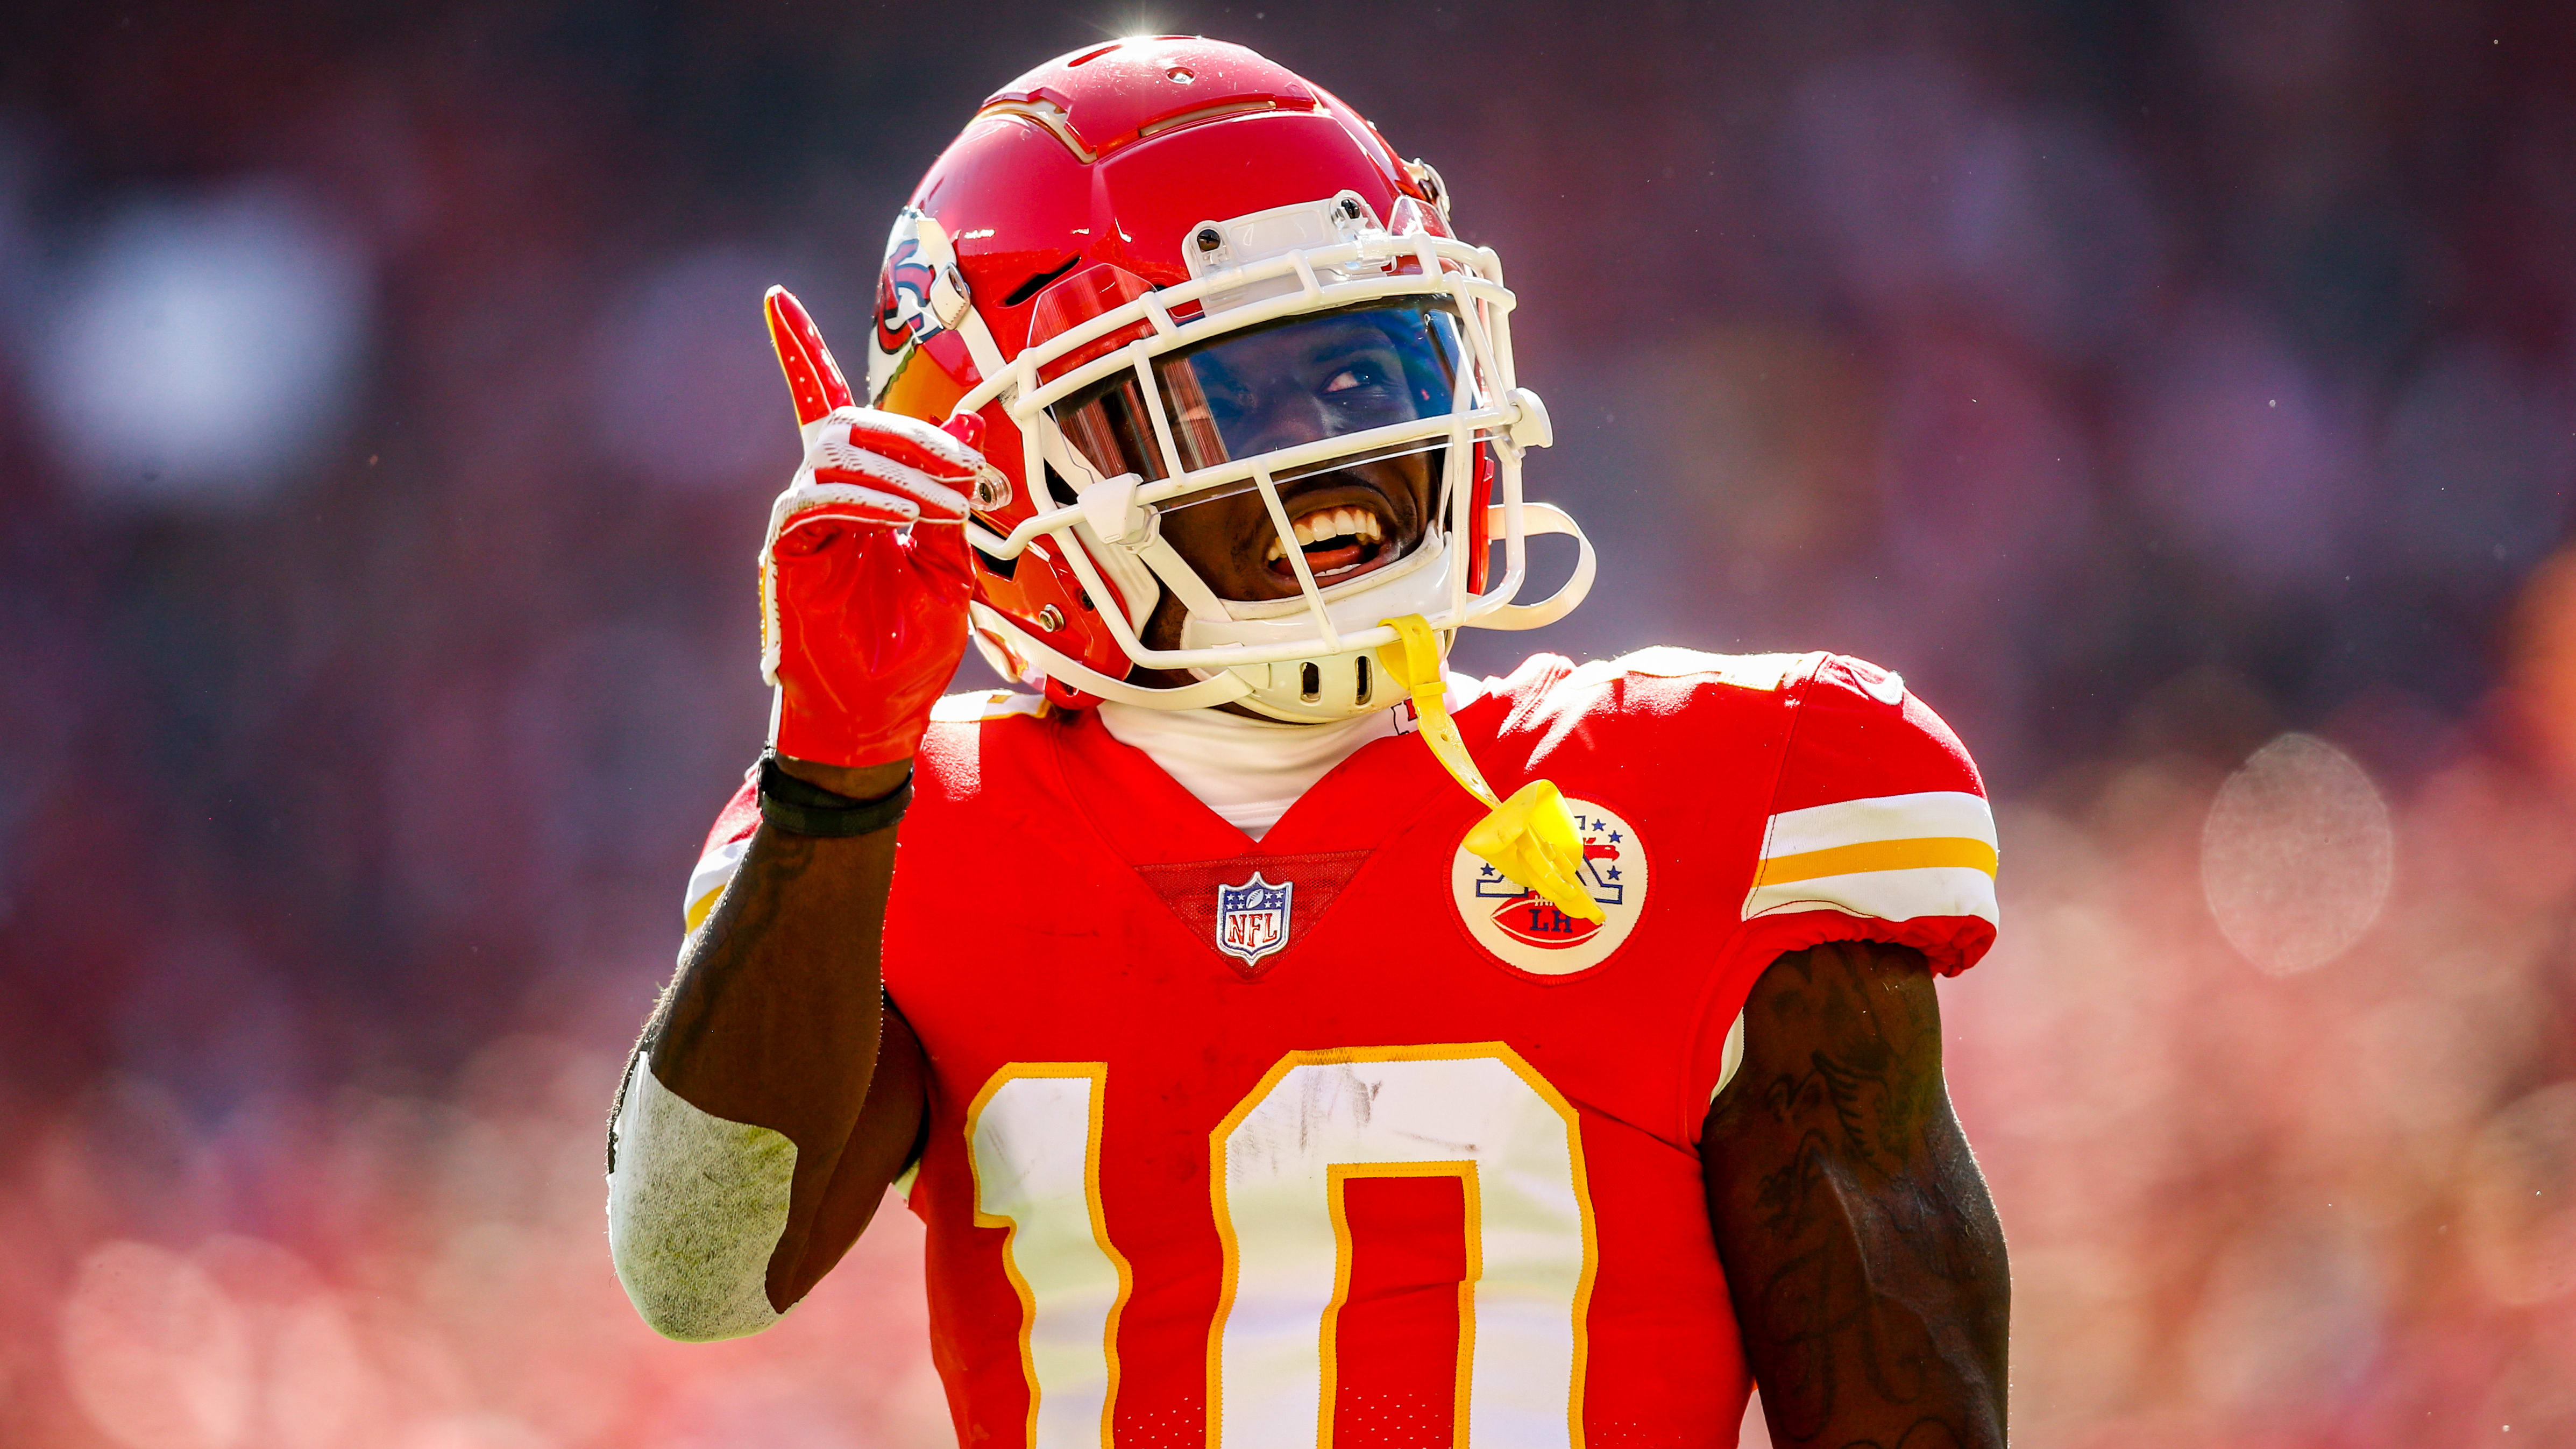 KANSAS CITY, MO - OCTOBER 28: Tyreek Hill #10 of the Kansas City Chiefs acknowledges the crowd after a catch during the first half of the game against the Denver Broncos at Arrowhead Stadium on October 28, 2018 in Kansas City, Missouri. (Photo by David Eulitt/Getty Images)